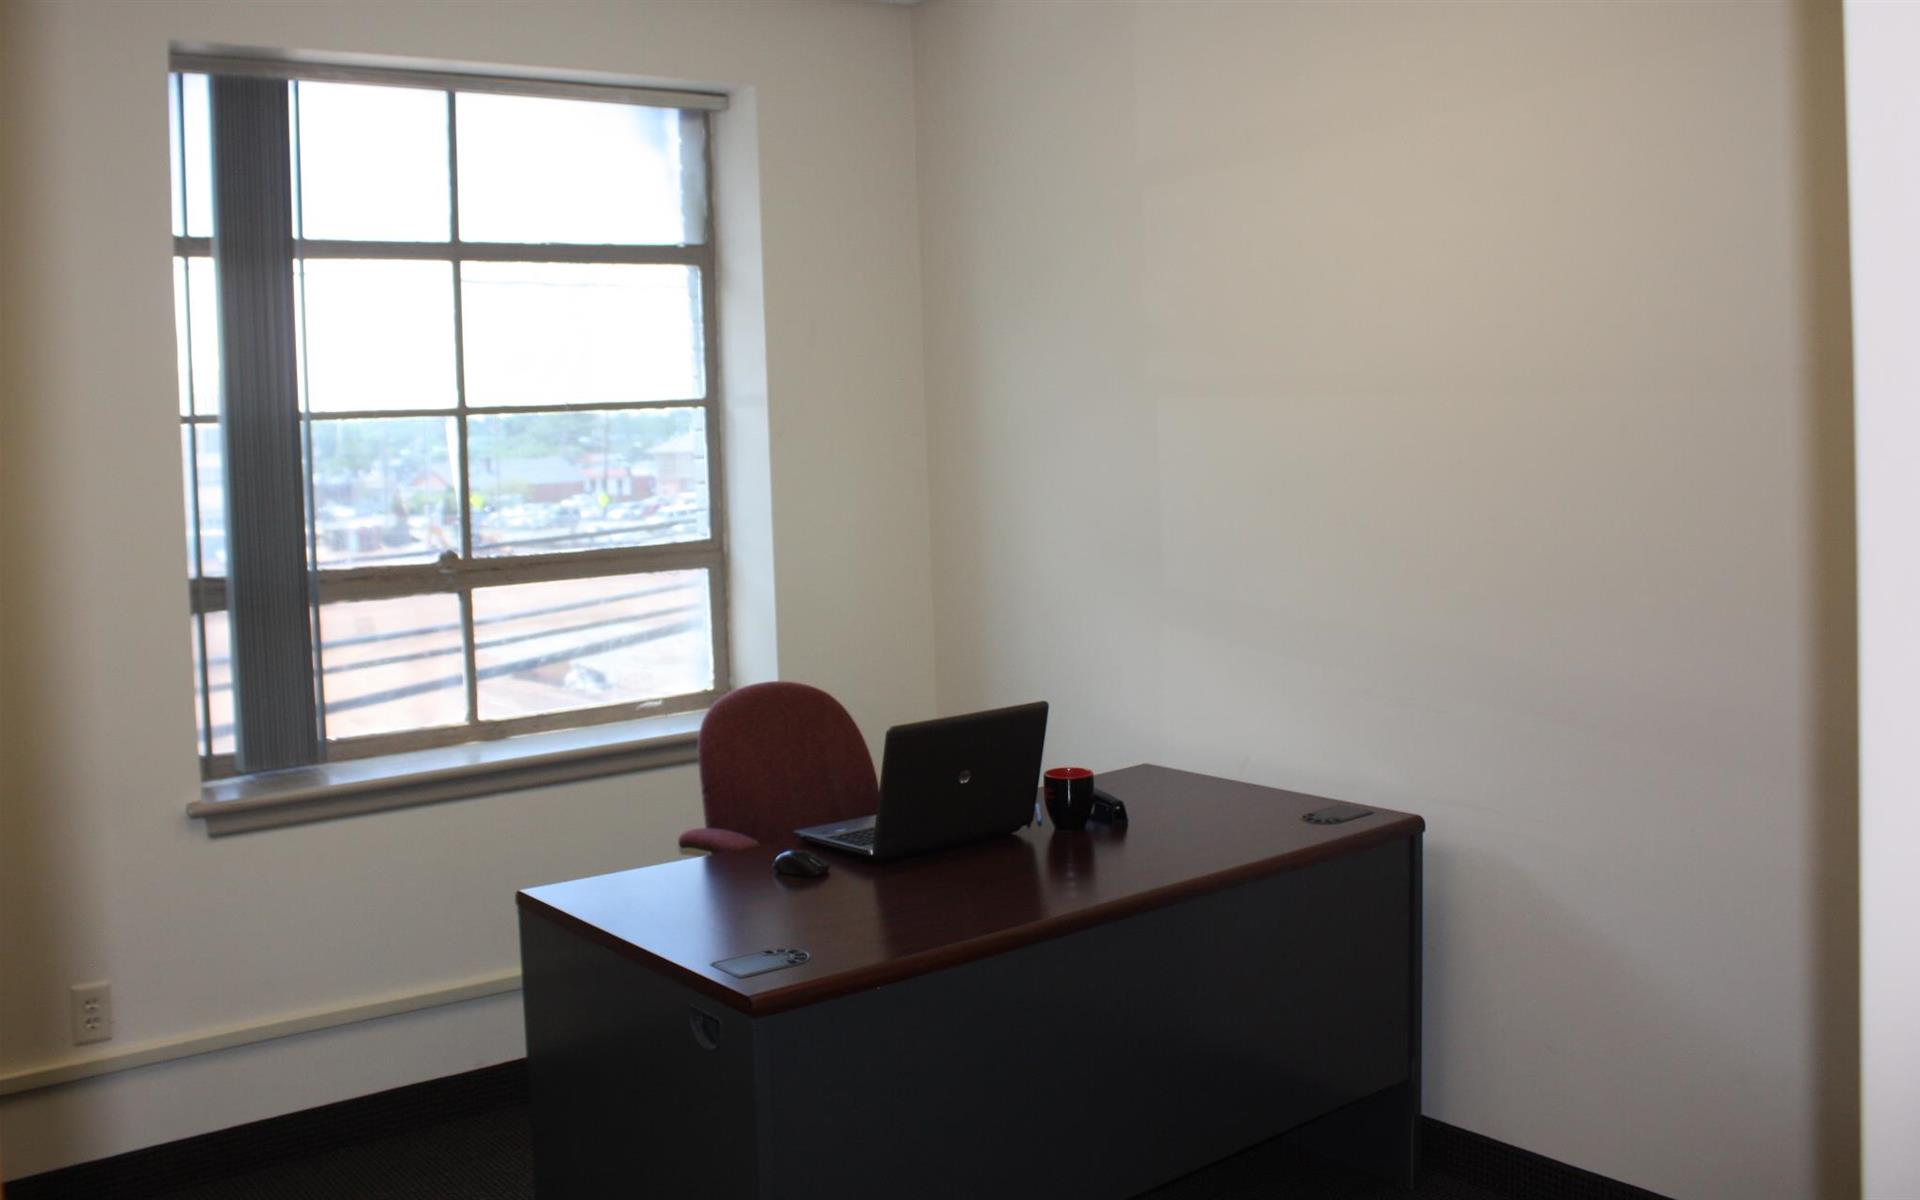 Offices and Coworking in Central NJ - Metuchen, NJ - Suite 202 - Private Office